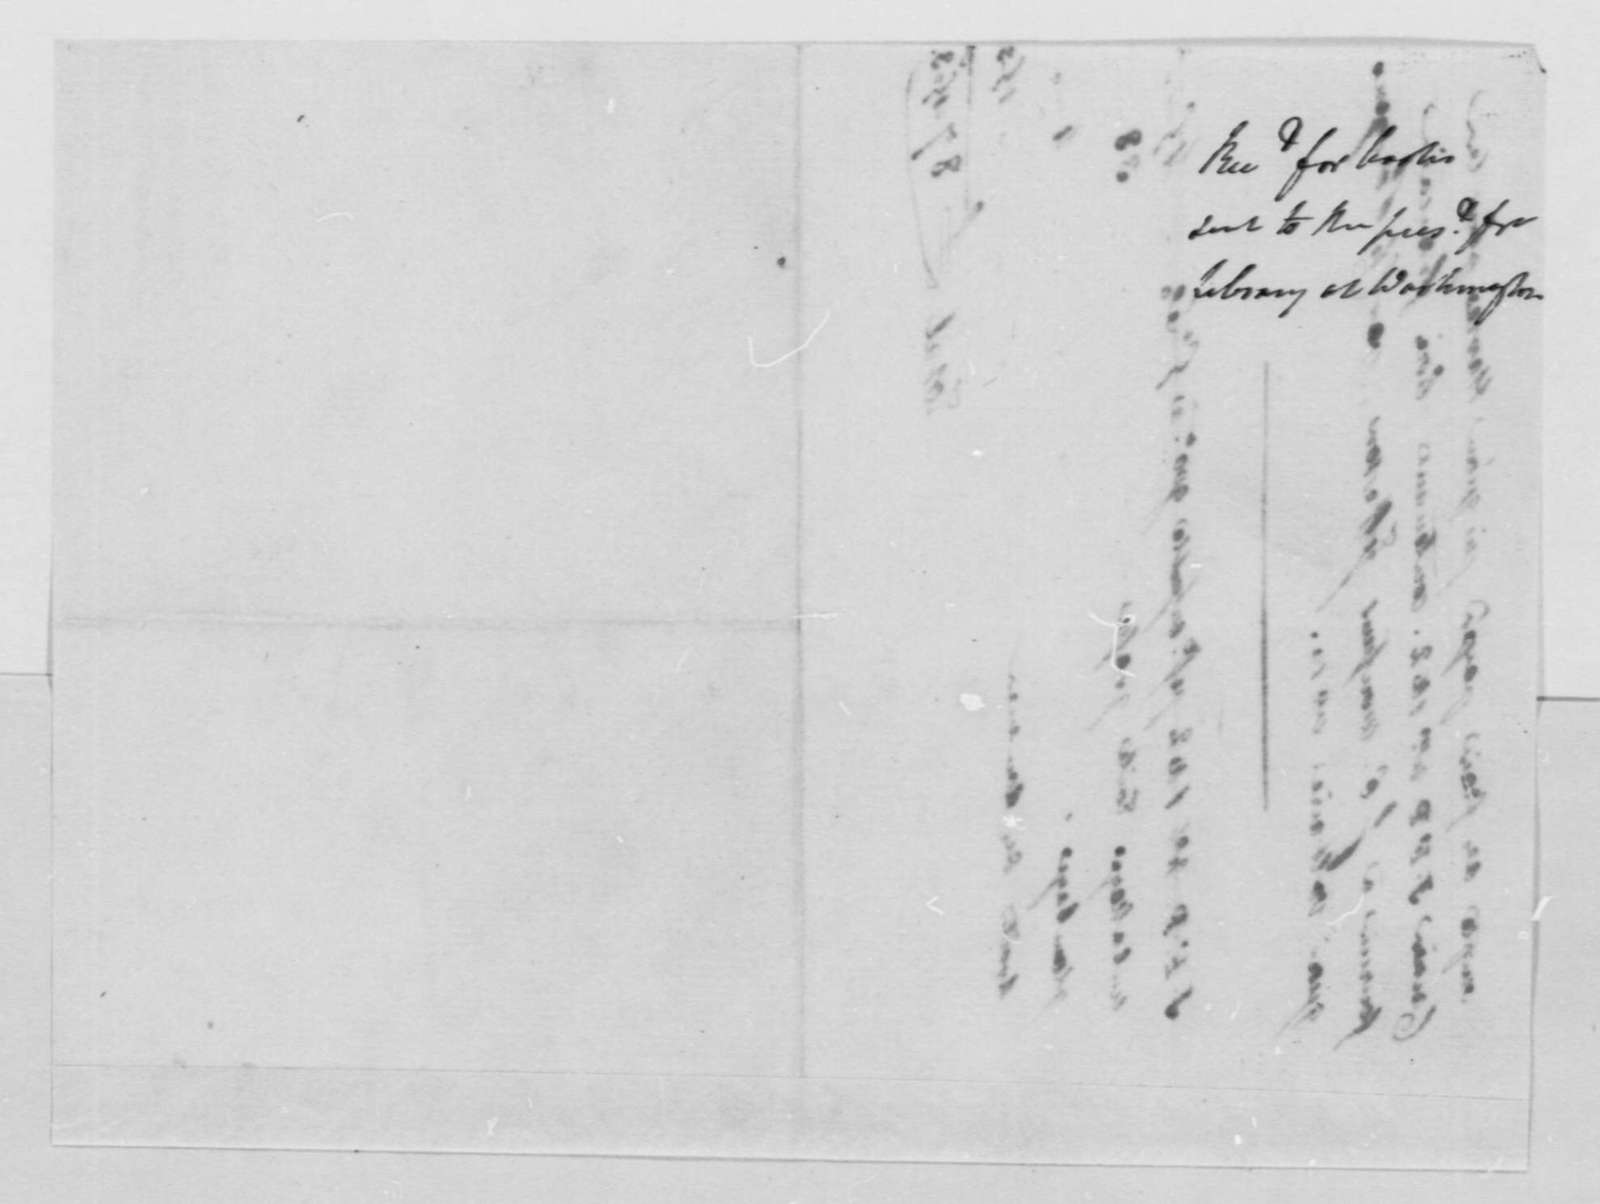 Charles de Pougens to Thomas Jefferson, no date, Receipt, in French